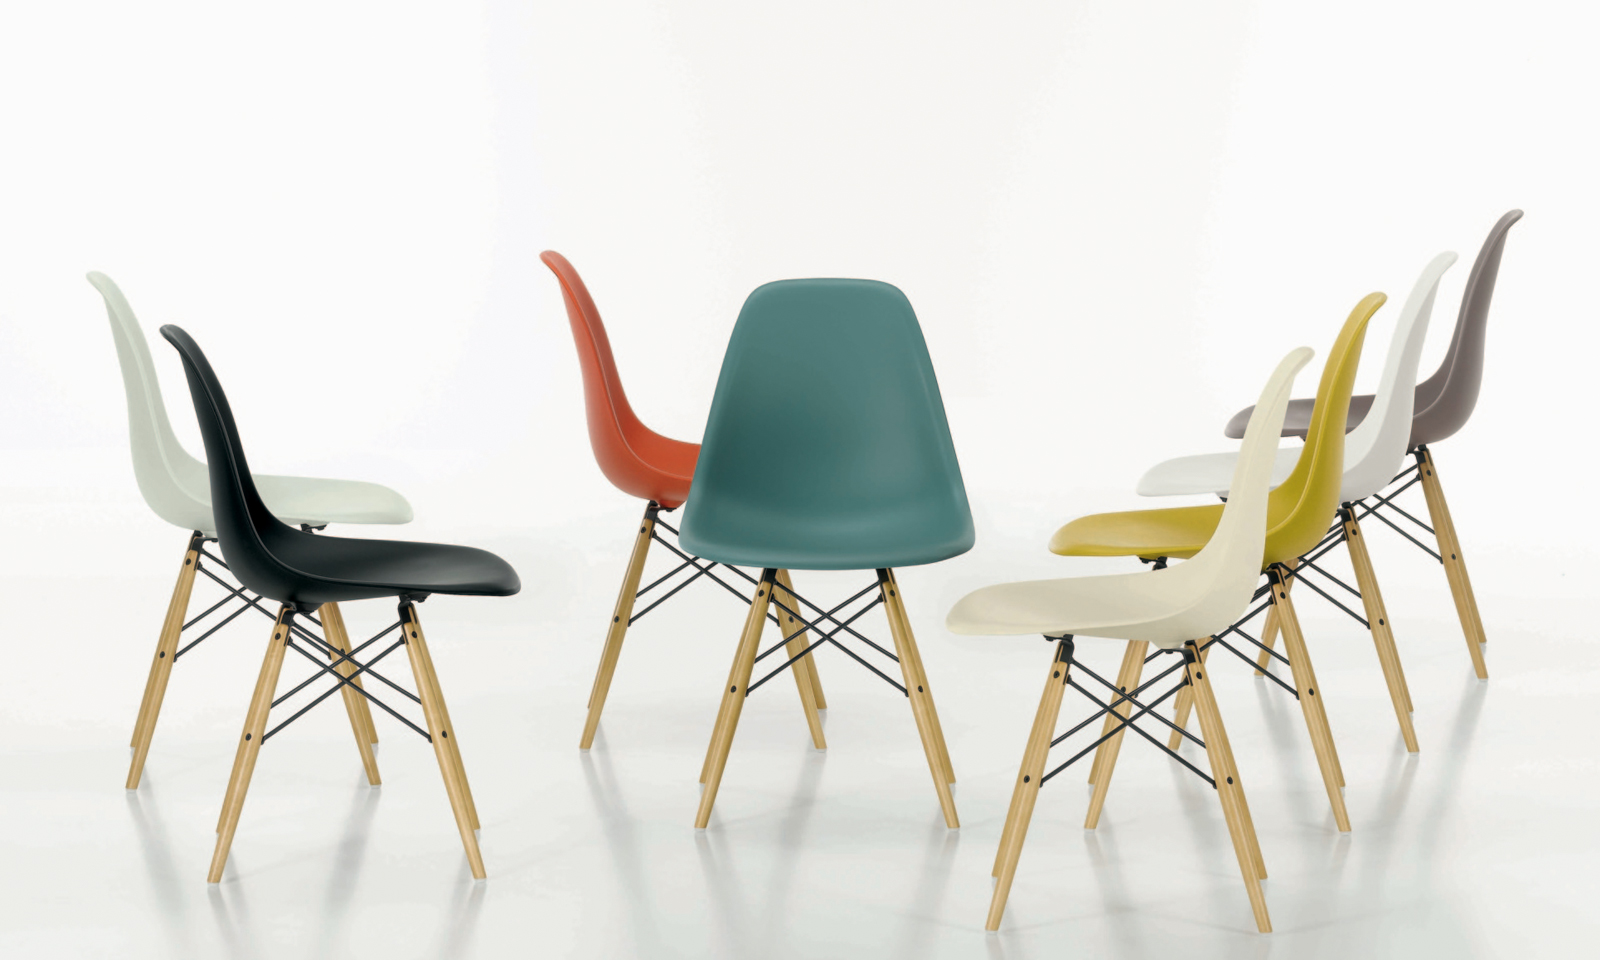 The presentation of this Eames DSW chair is the wrong way to show a product for interior designers and architects. There is no single clear representation of the product and also it would be impossible to crop to obtain a clear, uninterrupted image. Interior designers are used to having to crop images to get what they want but this image would be impossible even to crop.